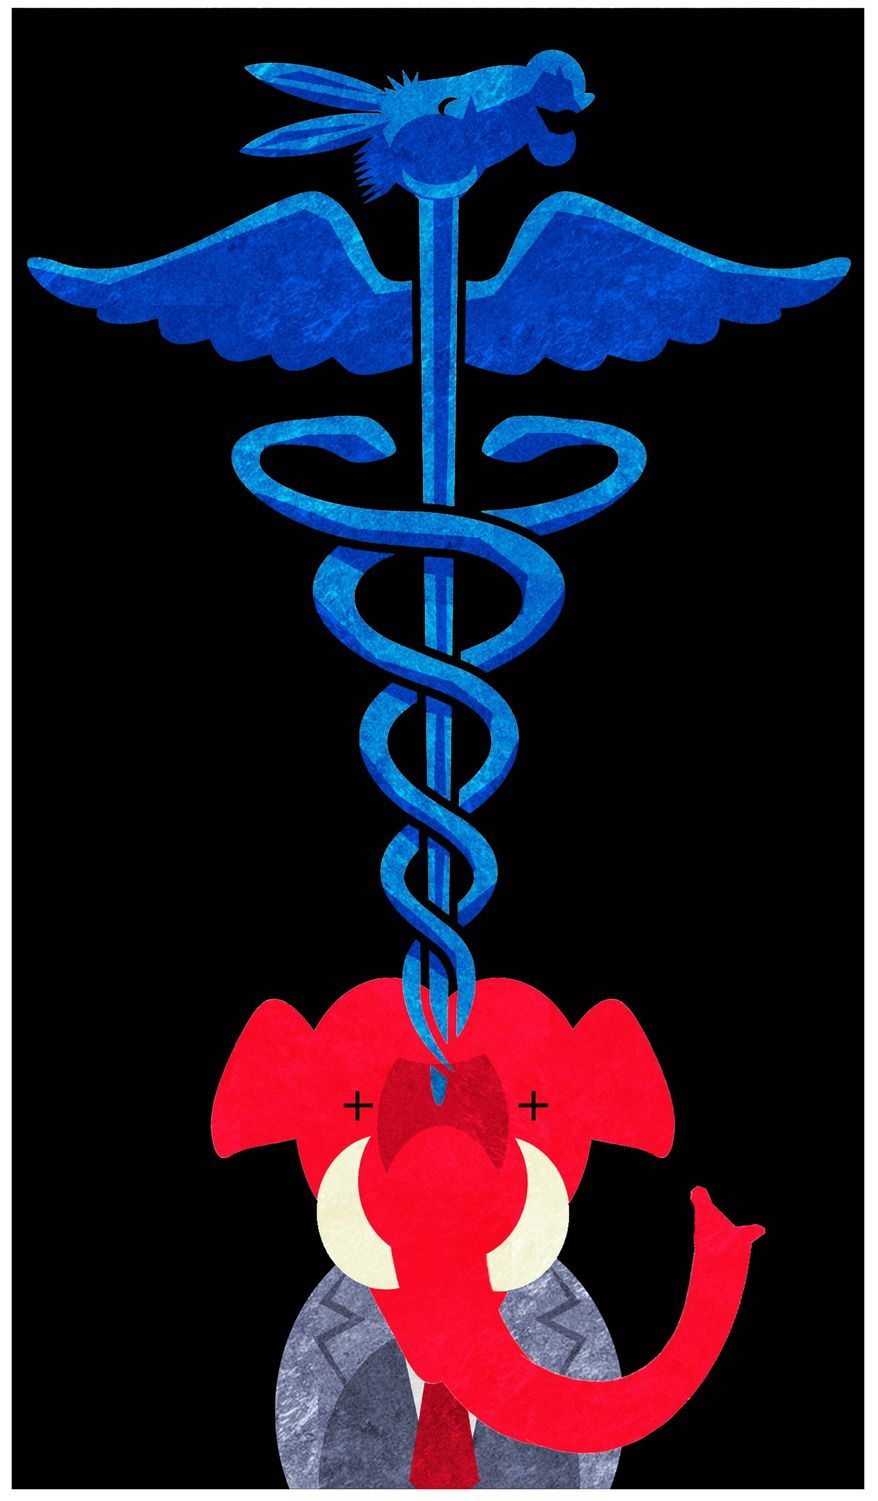 Illustration on the Democrats' new found favor in Obamacare by Alexander Hunter/The Washington Times